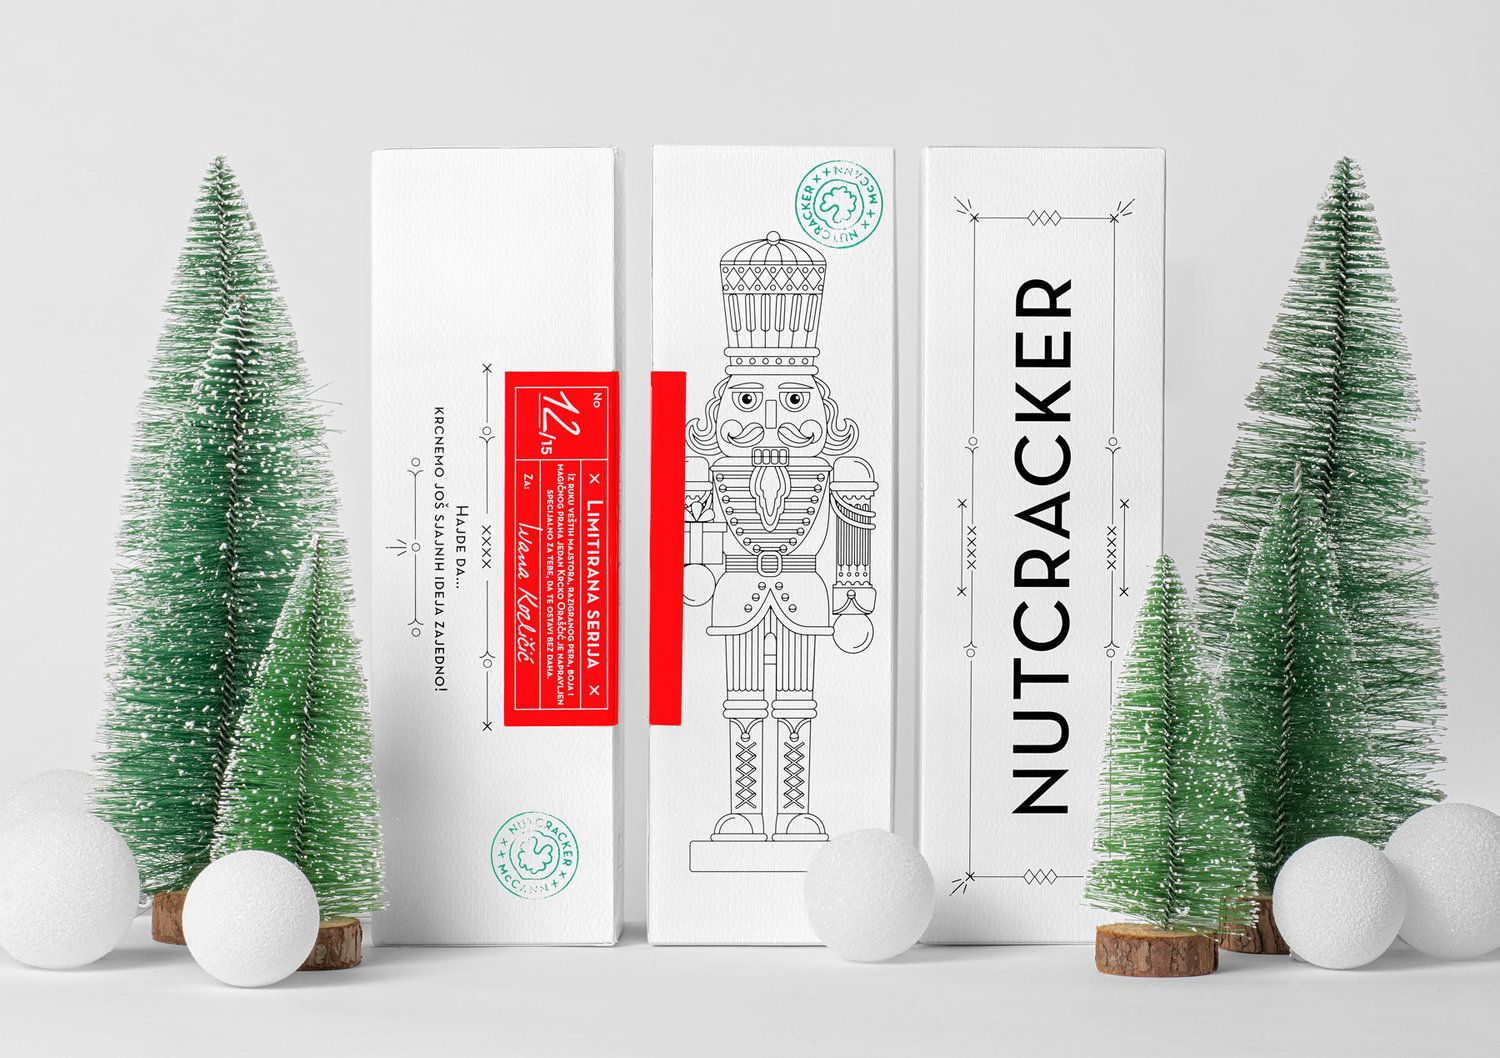 Check Out The Packaging For These Adorable Holiday Gifts Handmade Personalized Gifts Holiday Packaging Design Christmas Packaging